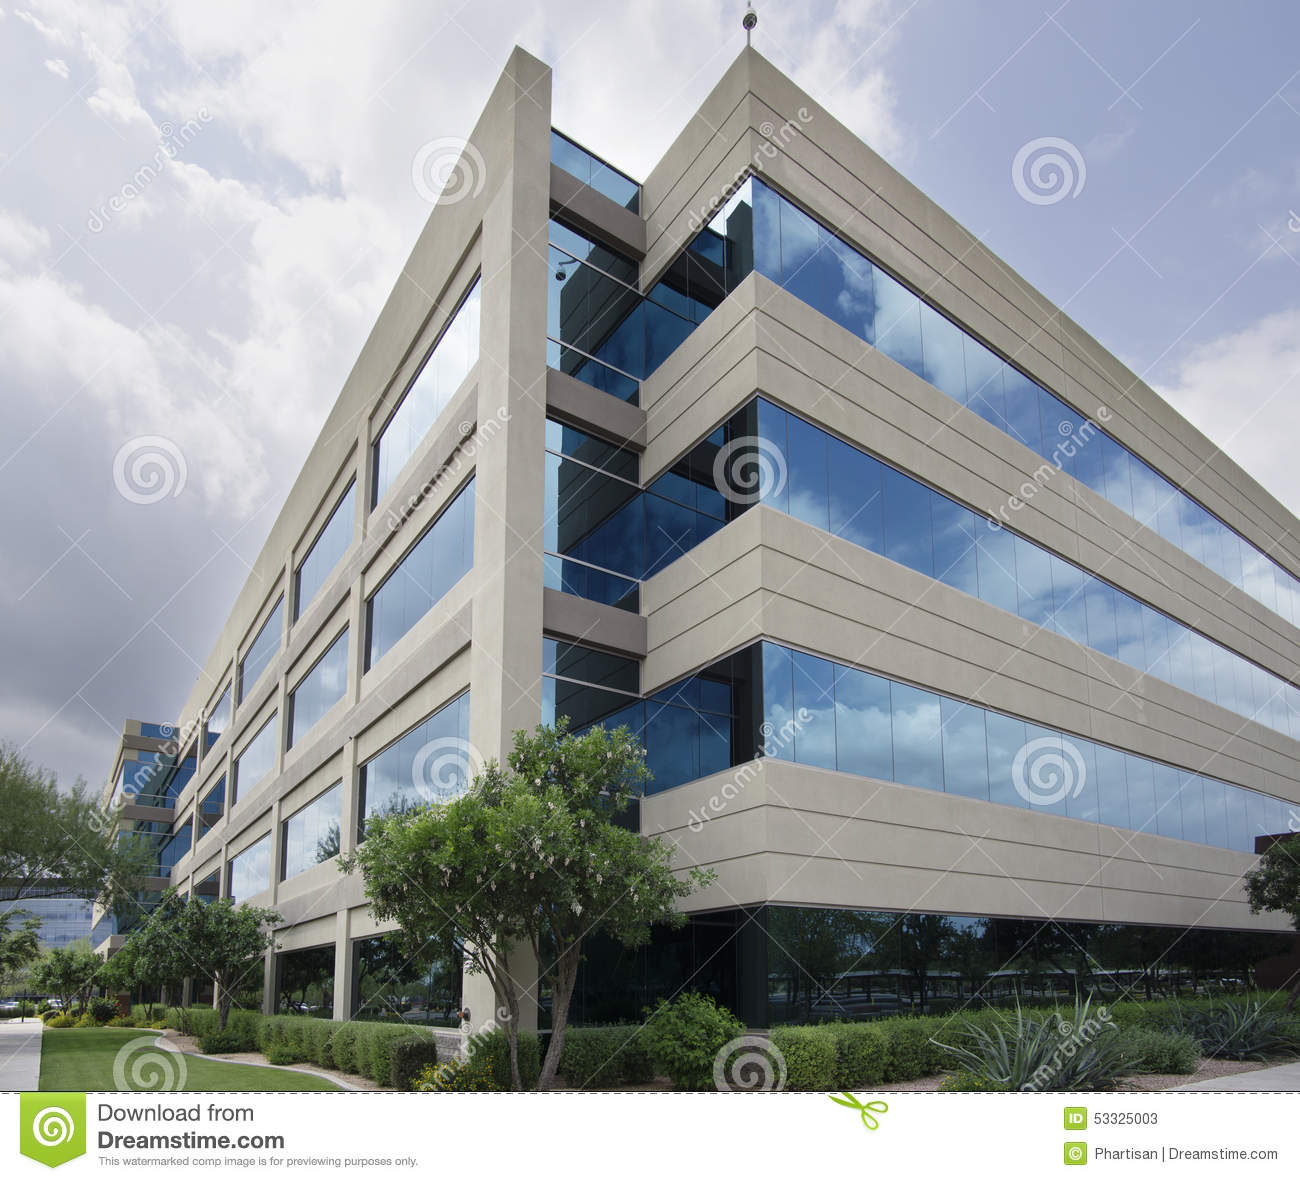 Symbol Of Success   Modern Glass Office Building Stock Image   Image Of  Blue, Contemporary: 53325003